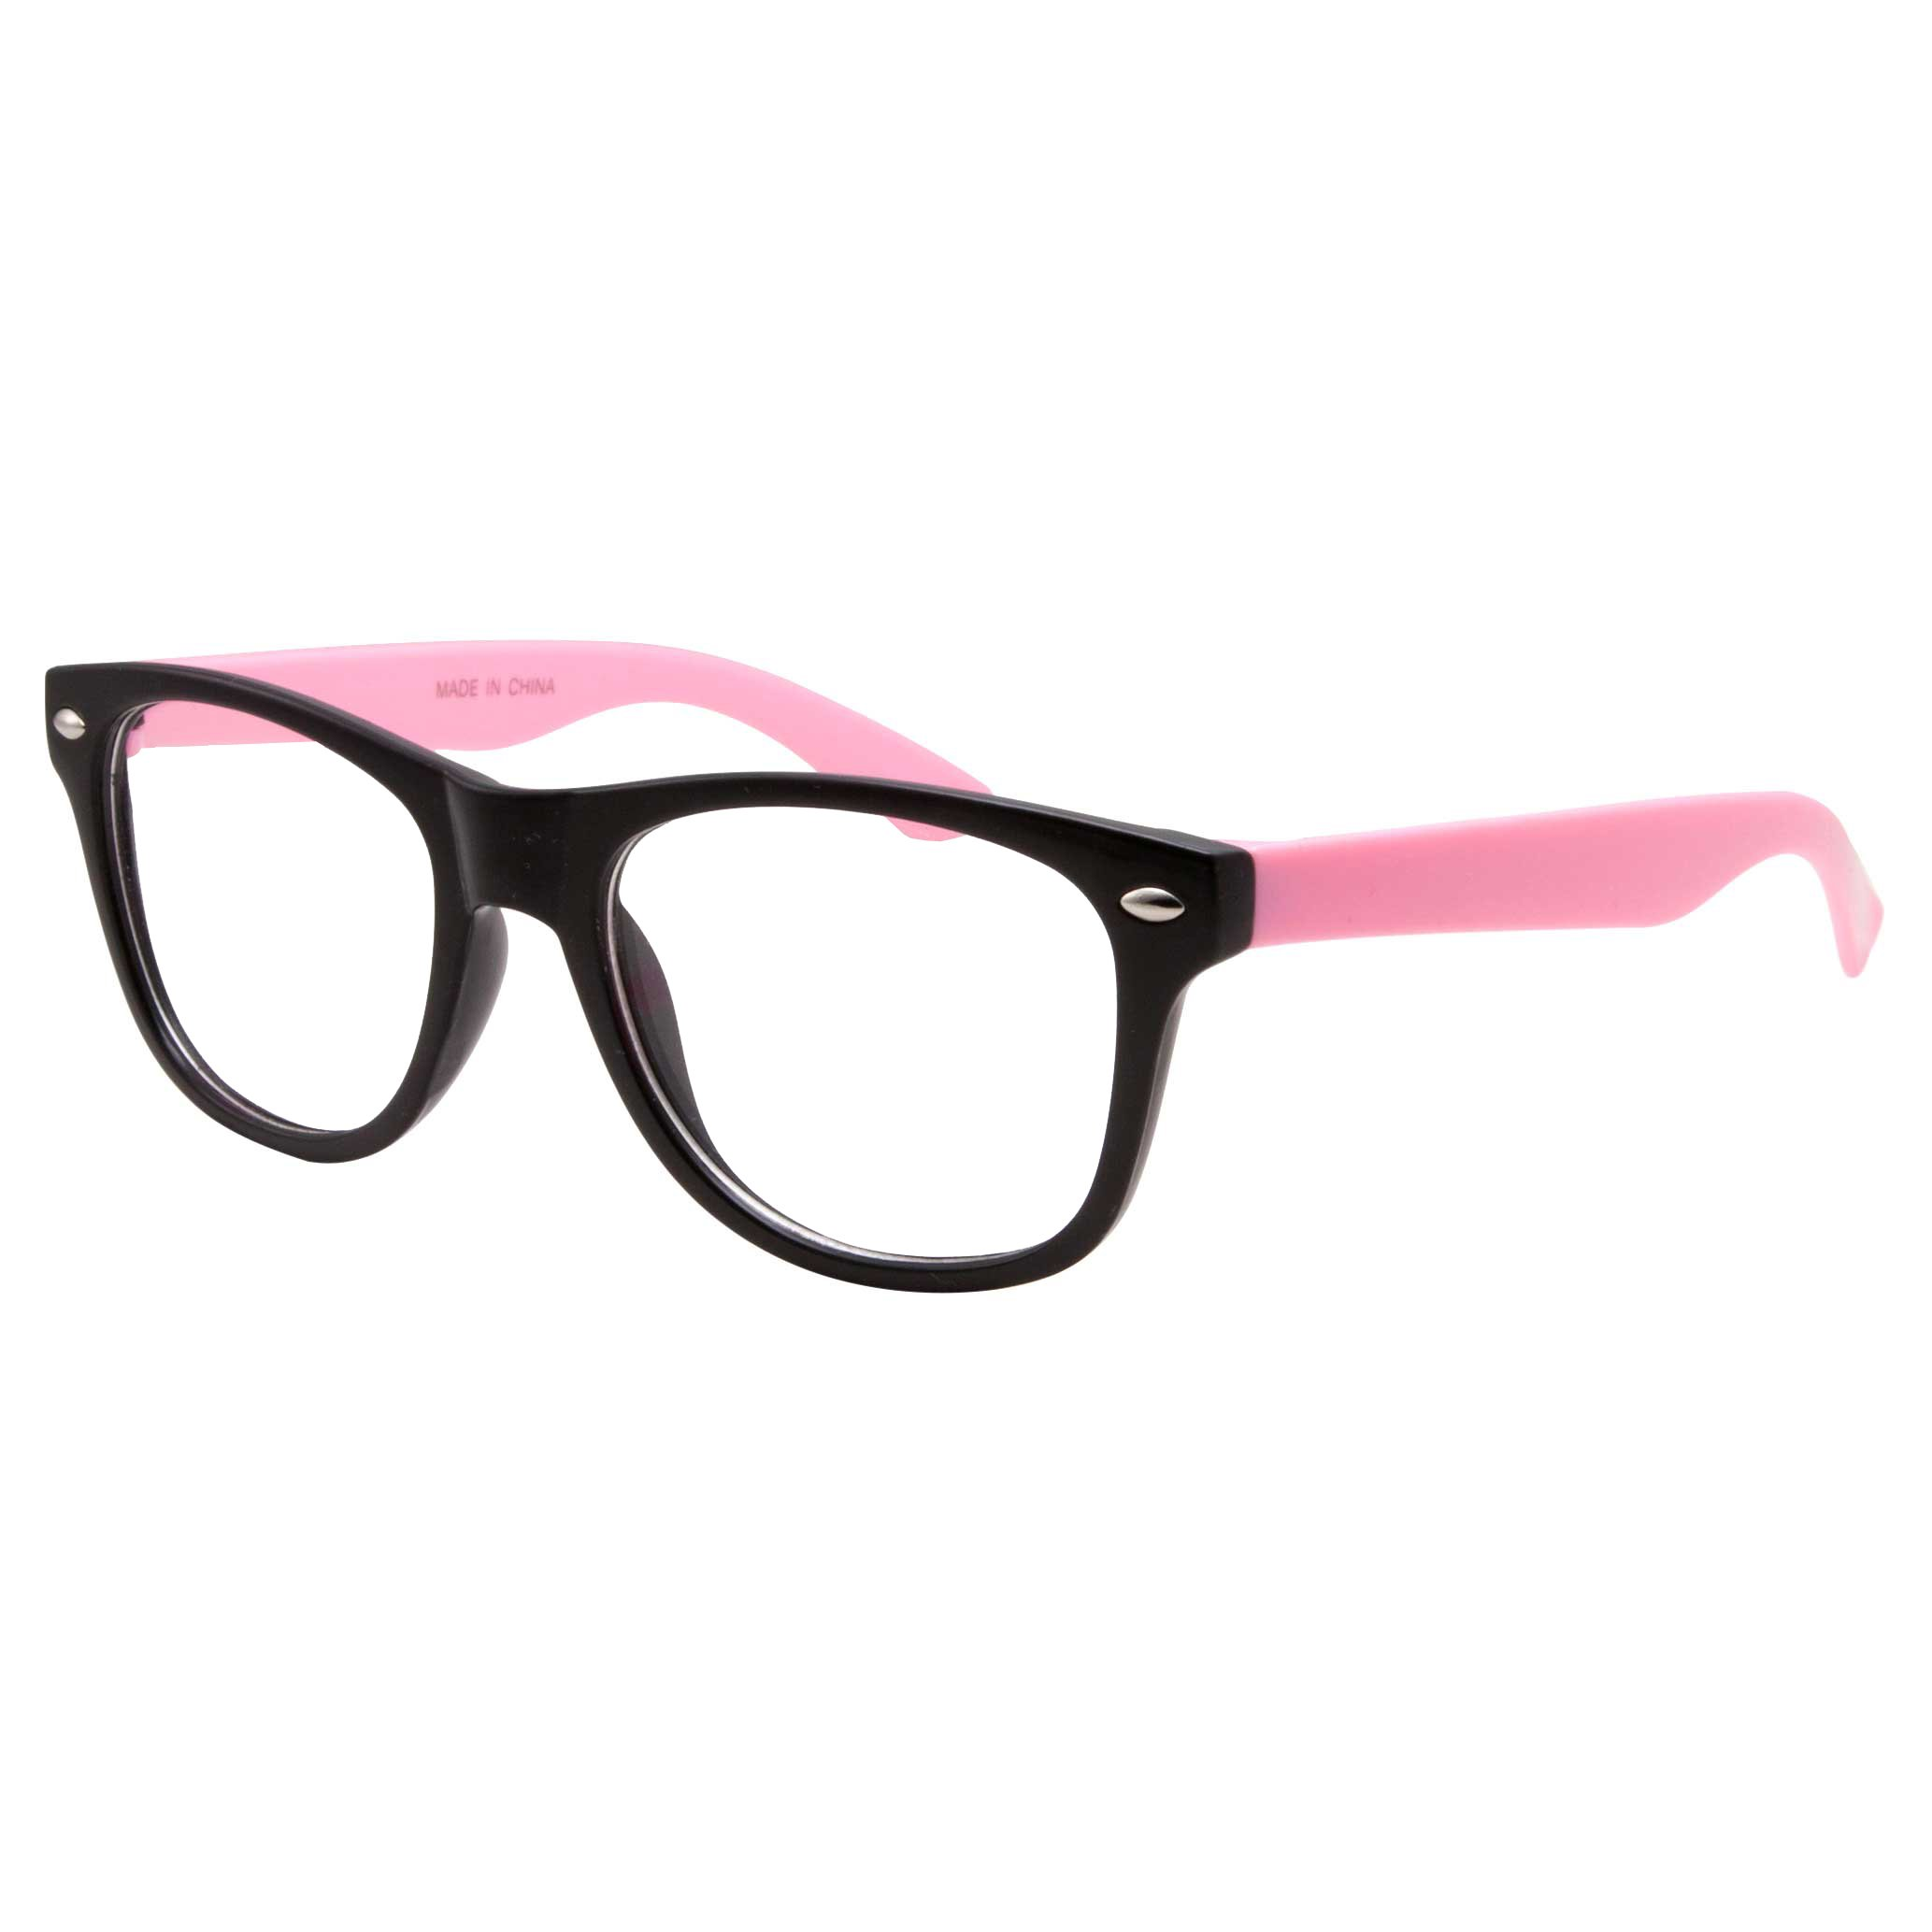 4719a459e4f Get Quotations · Kids Nerd Fake Glasses Clear Lens Colored Arms Geek Costume  Children s (Age 3-10